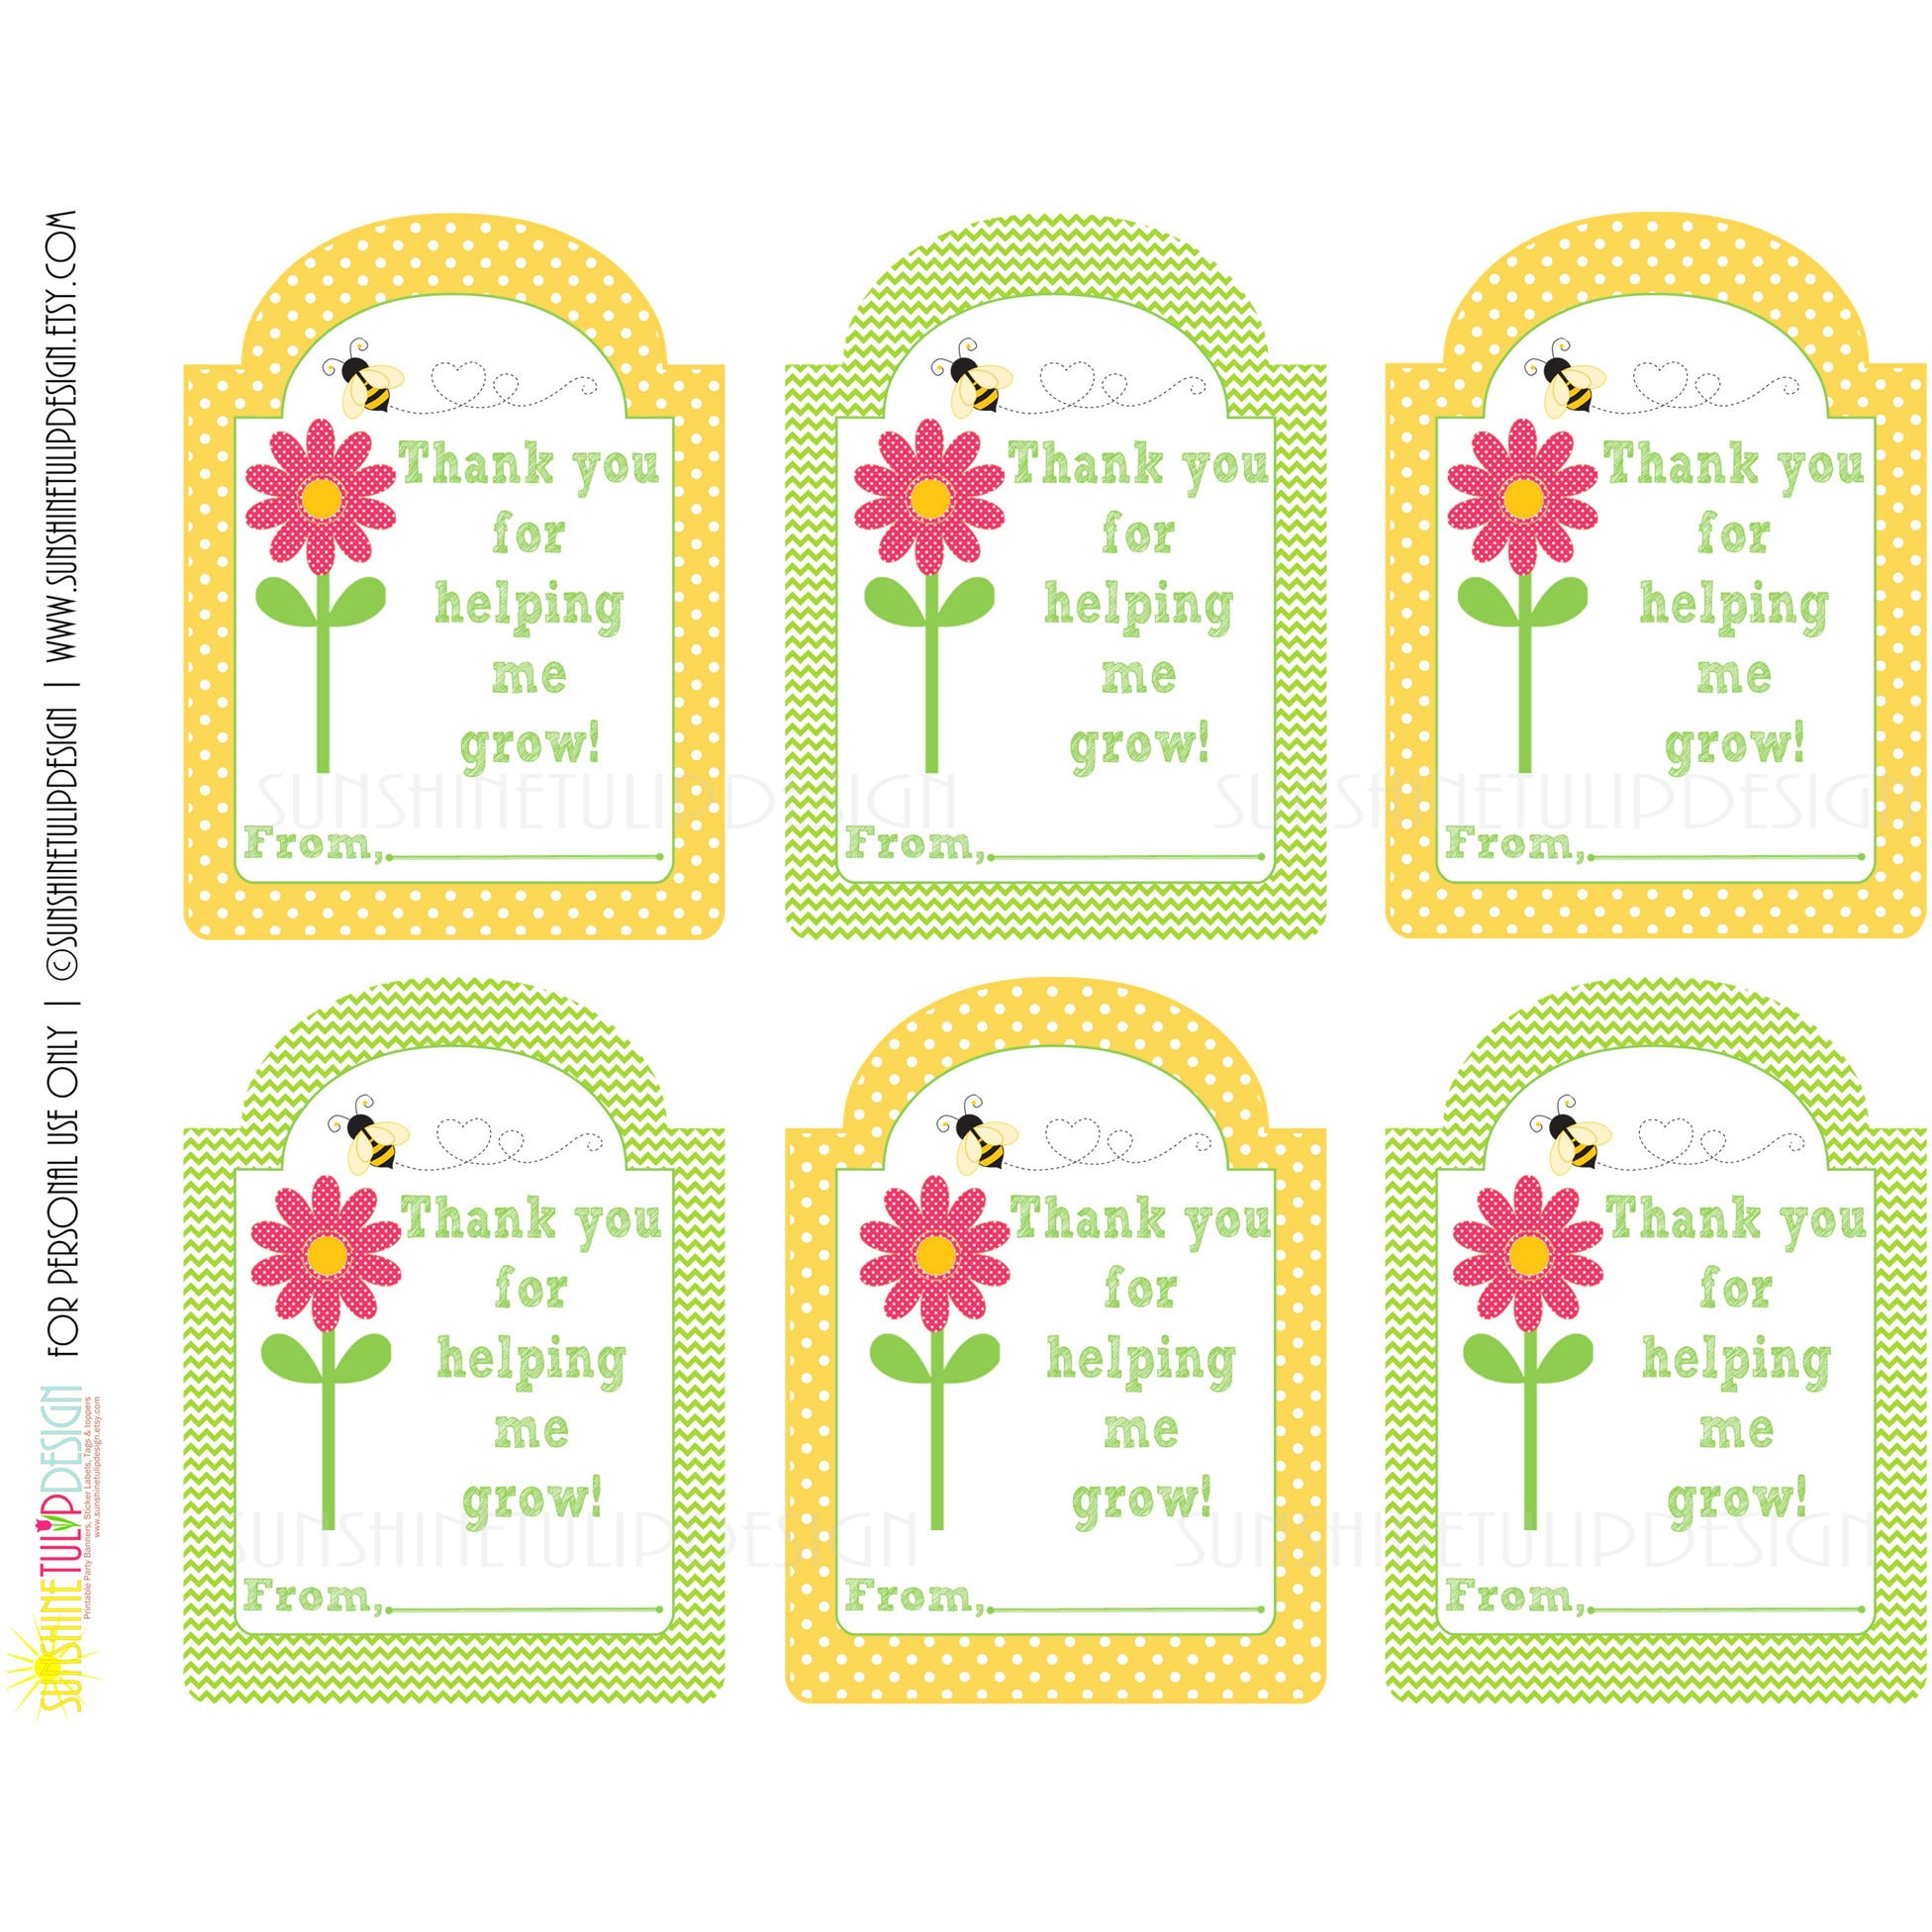 image regarding Teacher Thank You Printable identify Printable Trainer Appreciation Reward Tags, Thank Your self for Aiding Me Expand Tags by way of Sunshinetulipdesign